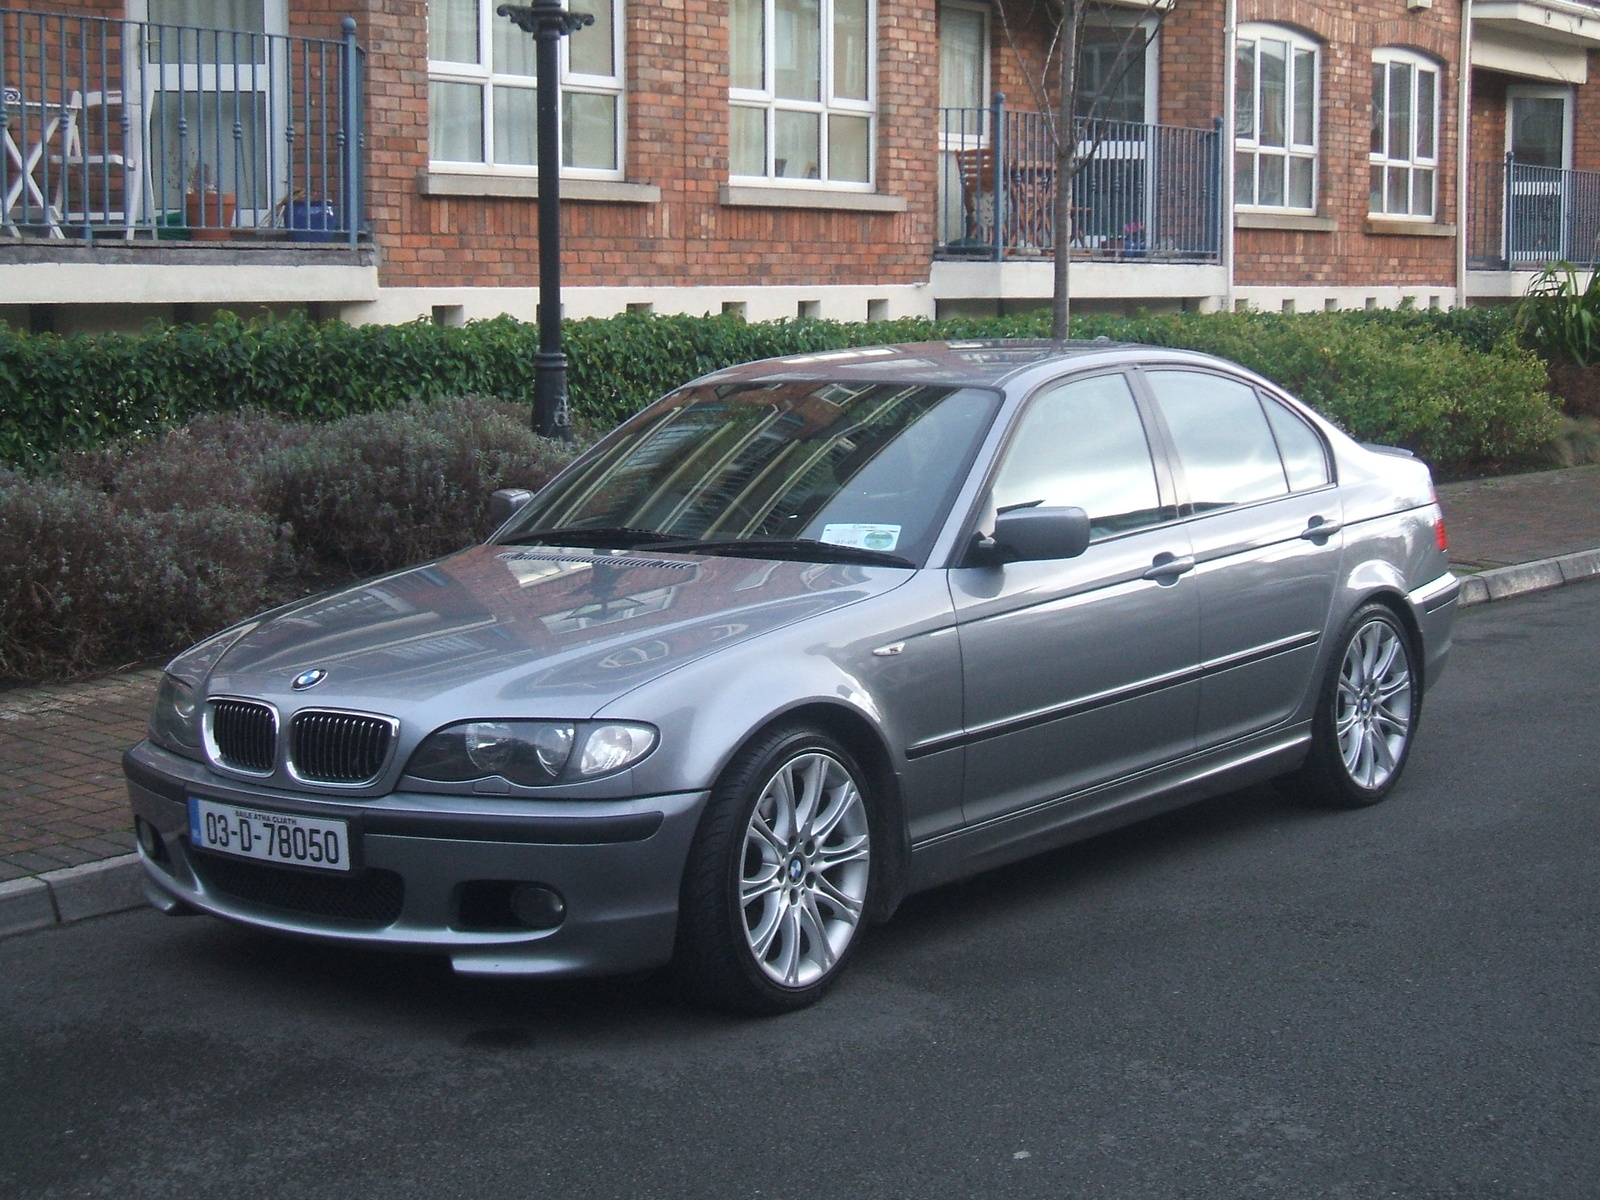 BMW 3 series 320i 2004 photo - 2